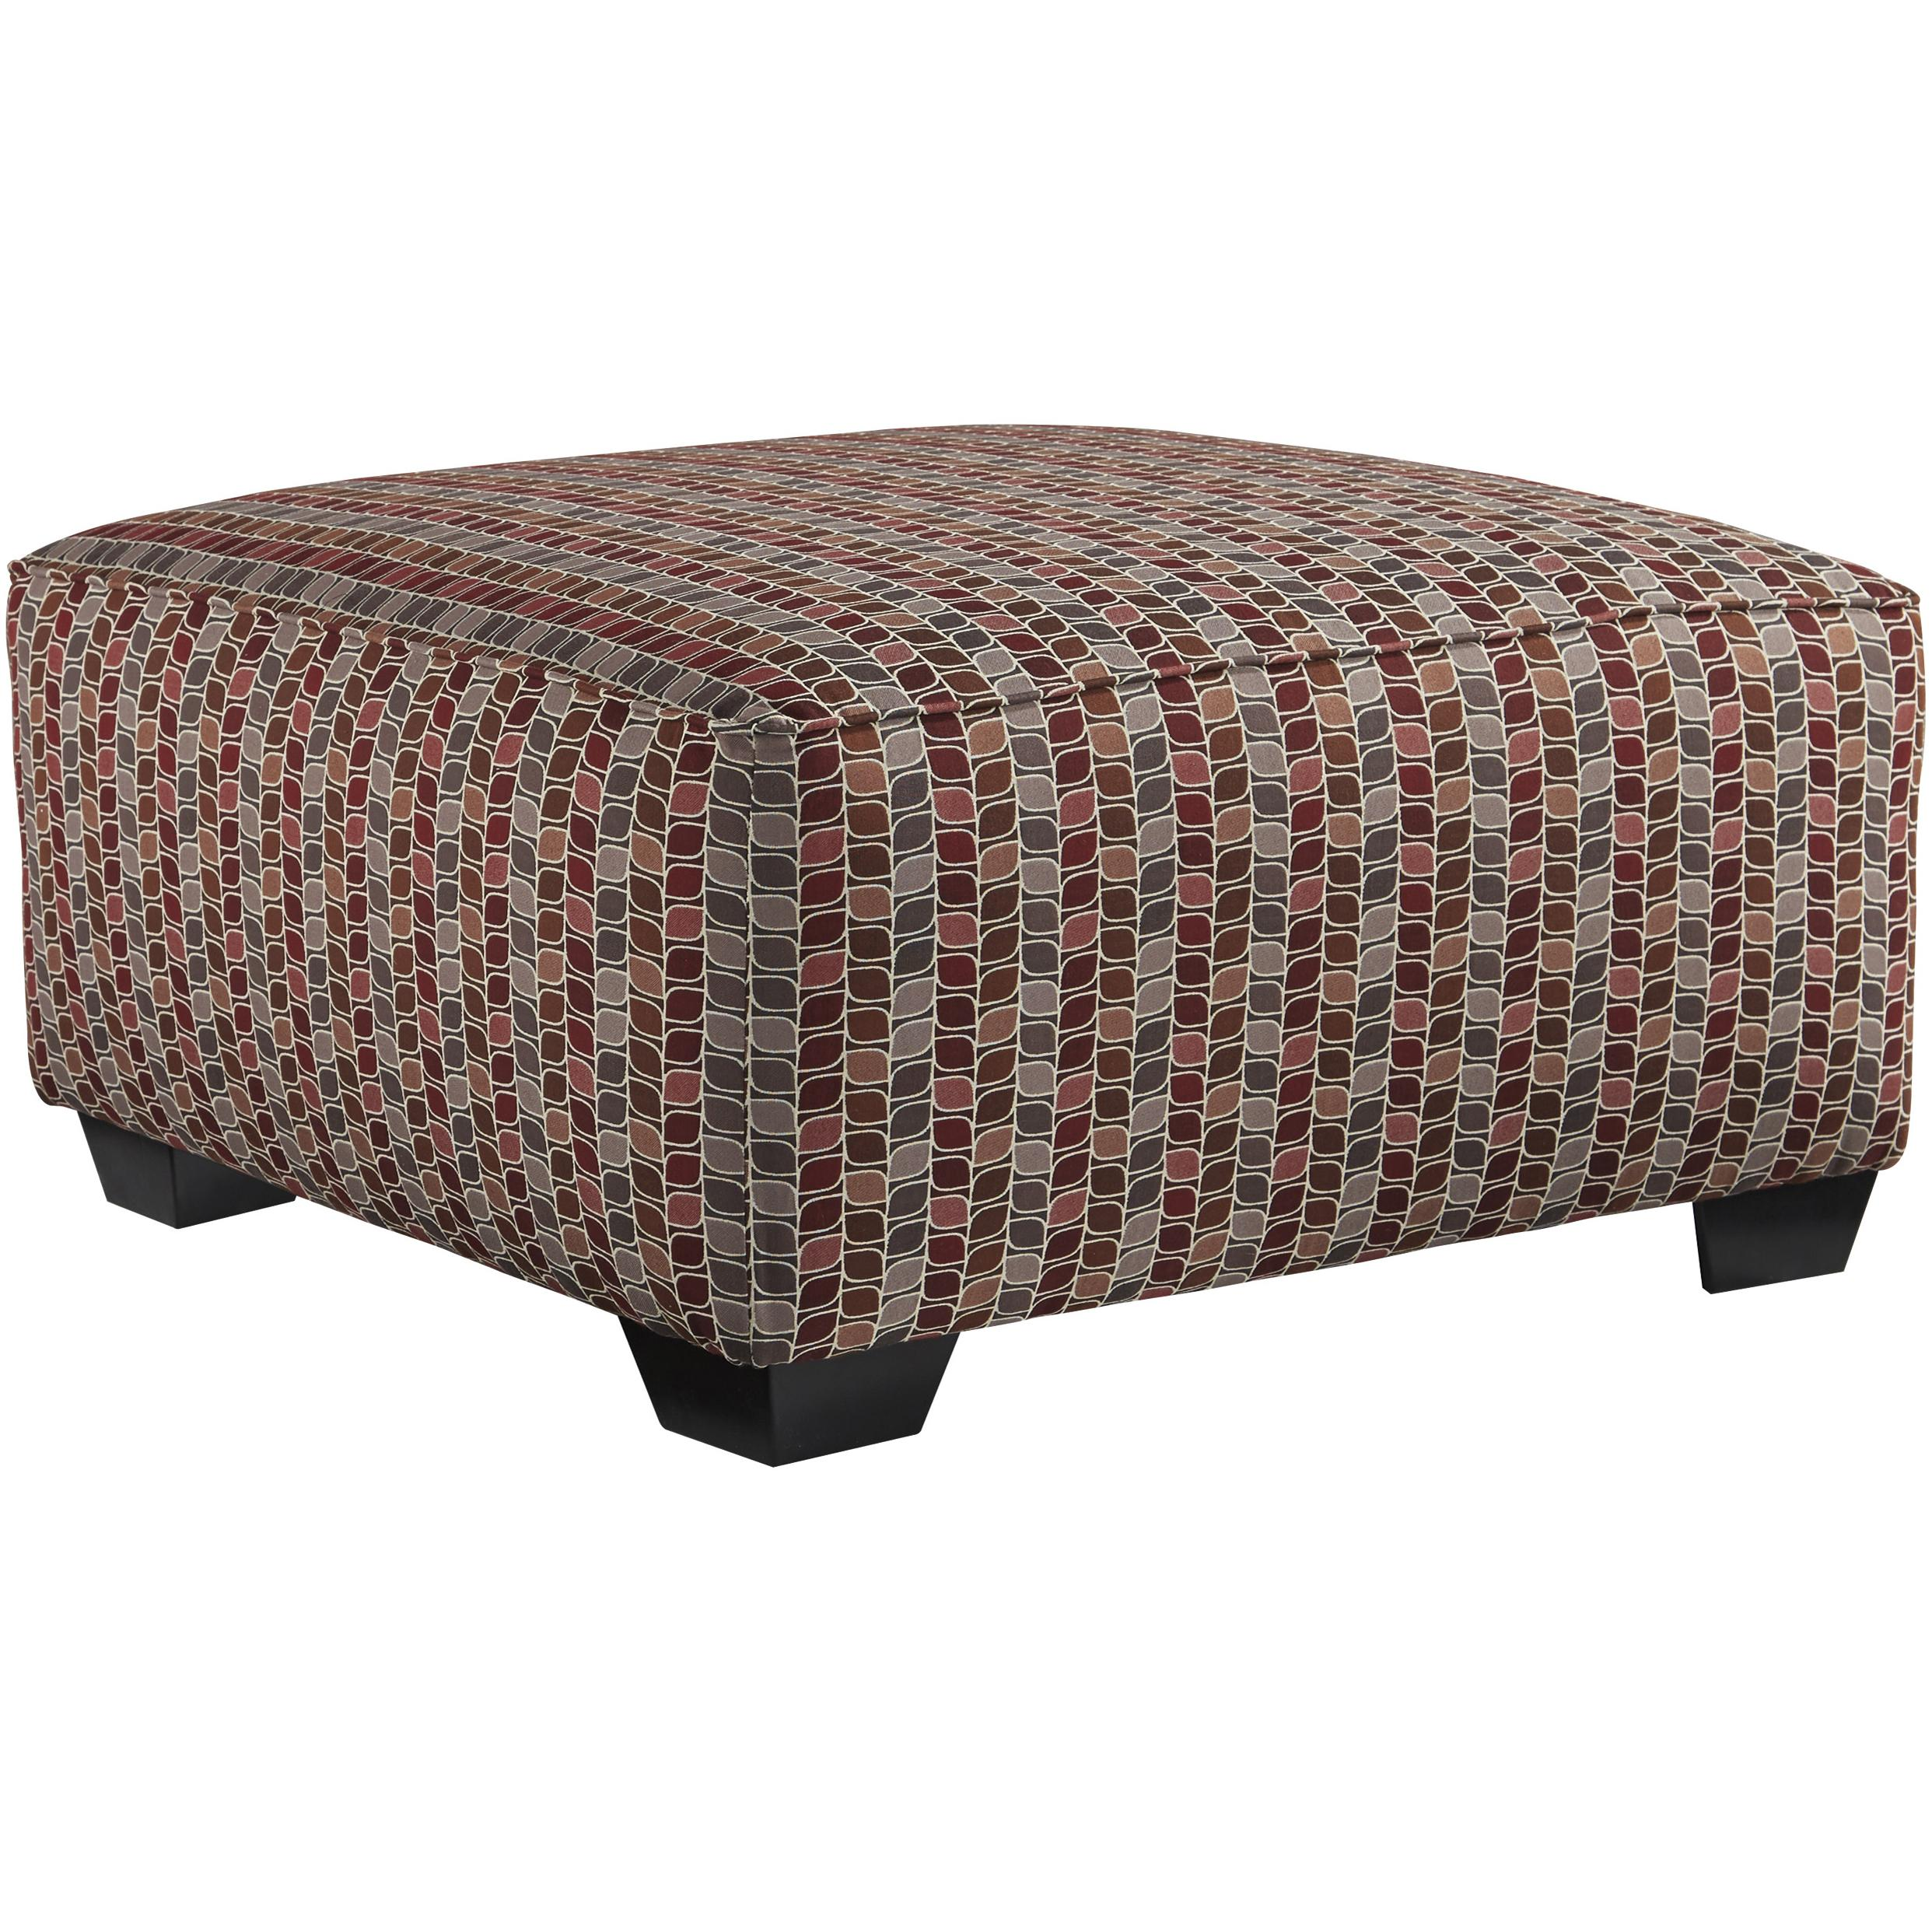 Benchcraft Doralin - Steel Contemporary Oversized Accent Ottoman - Item Number: 8680008